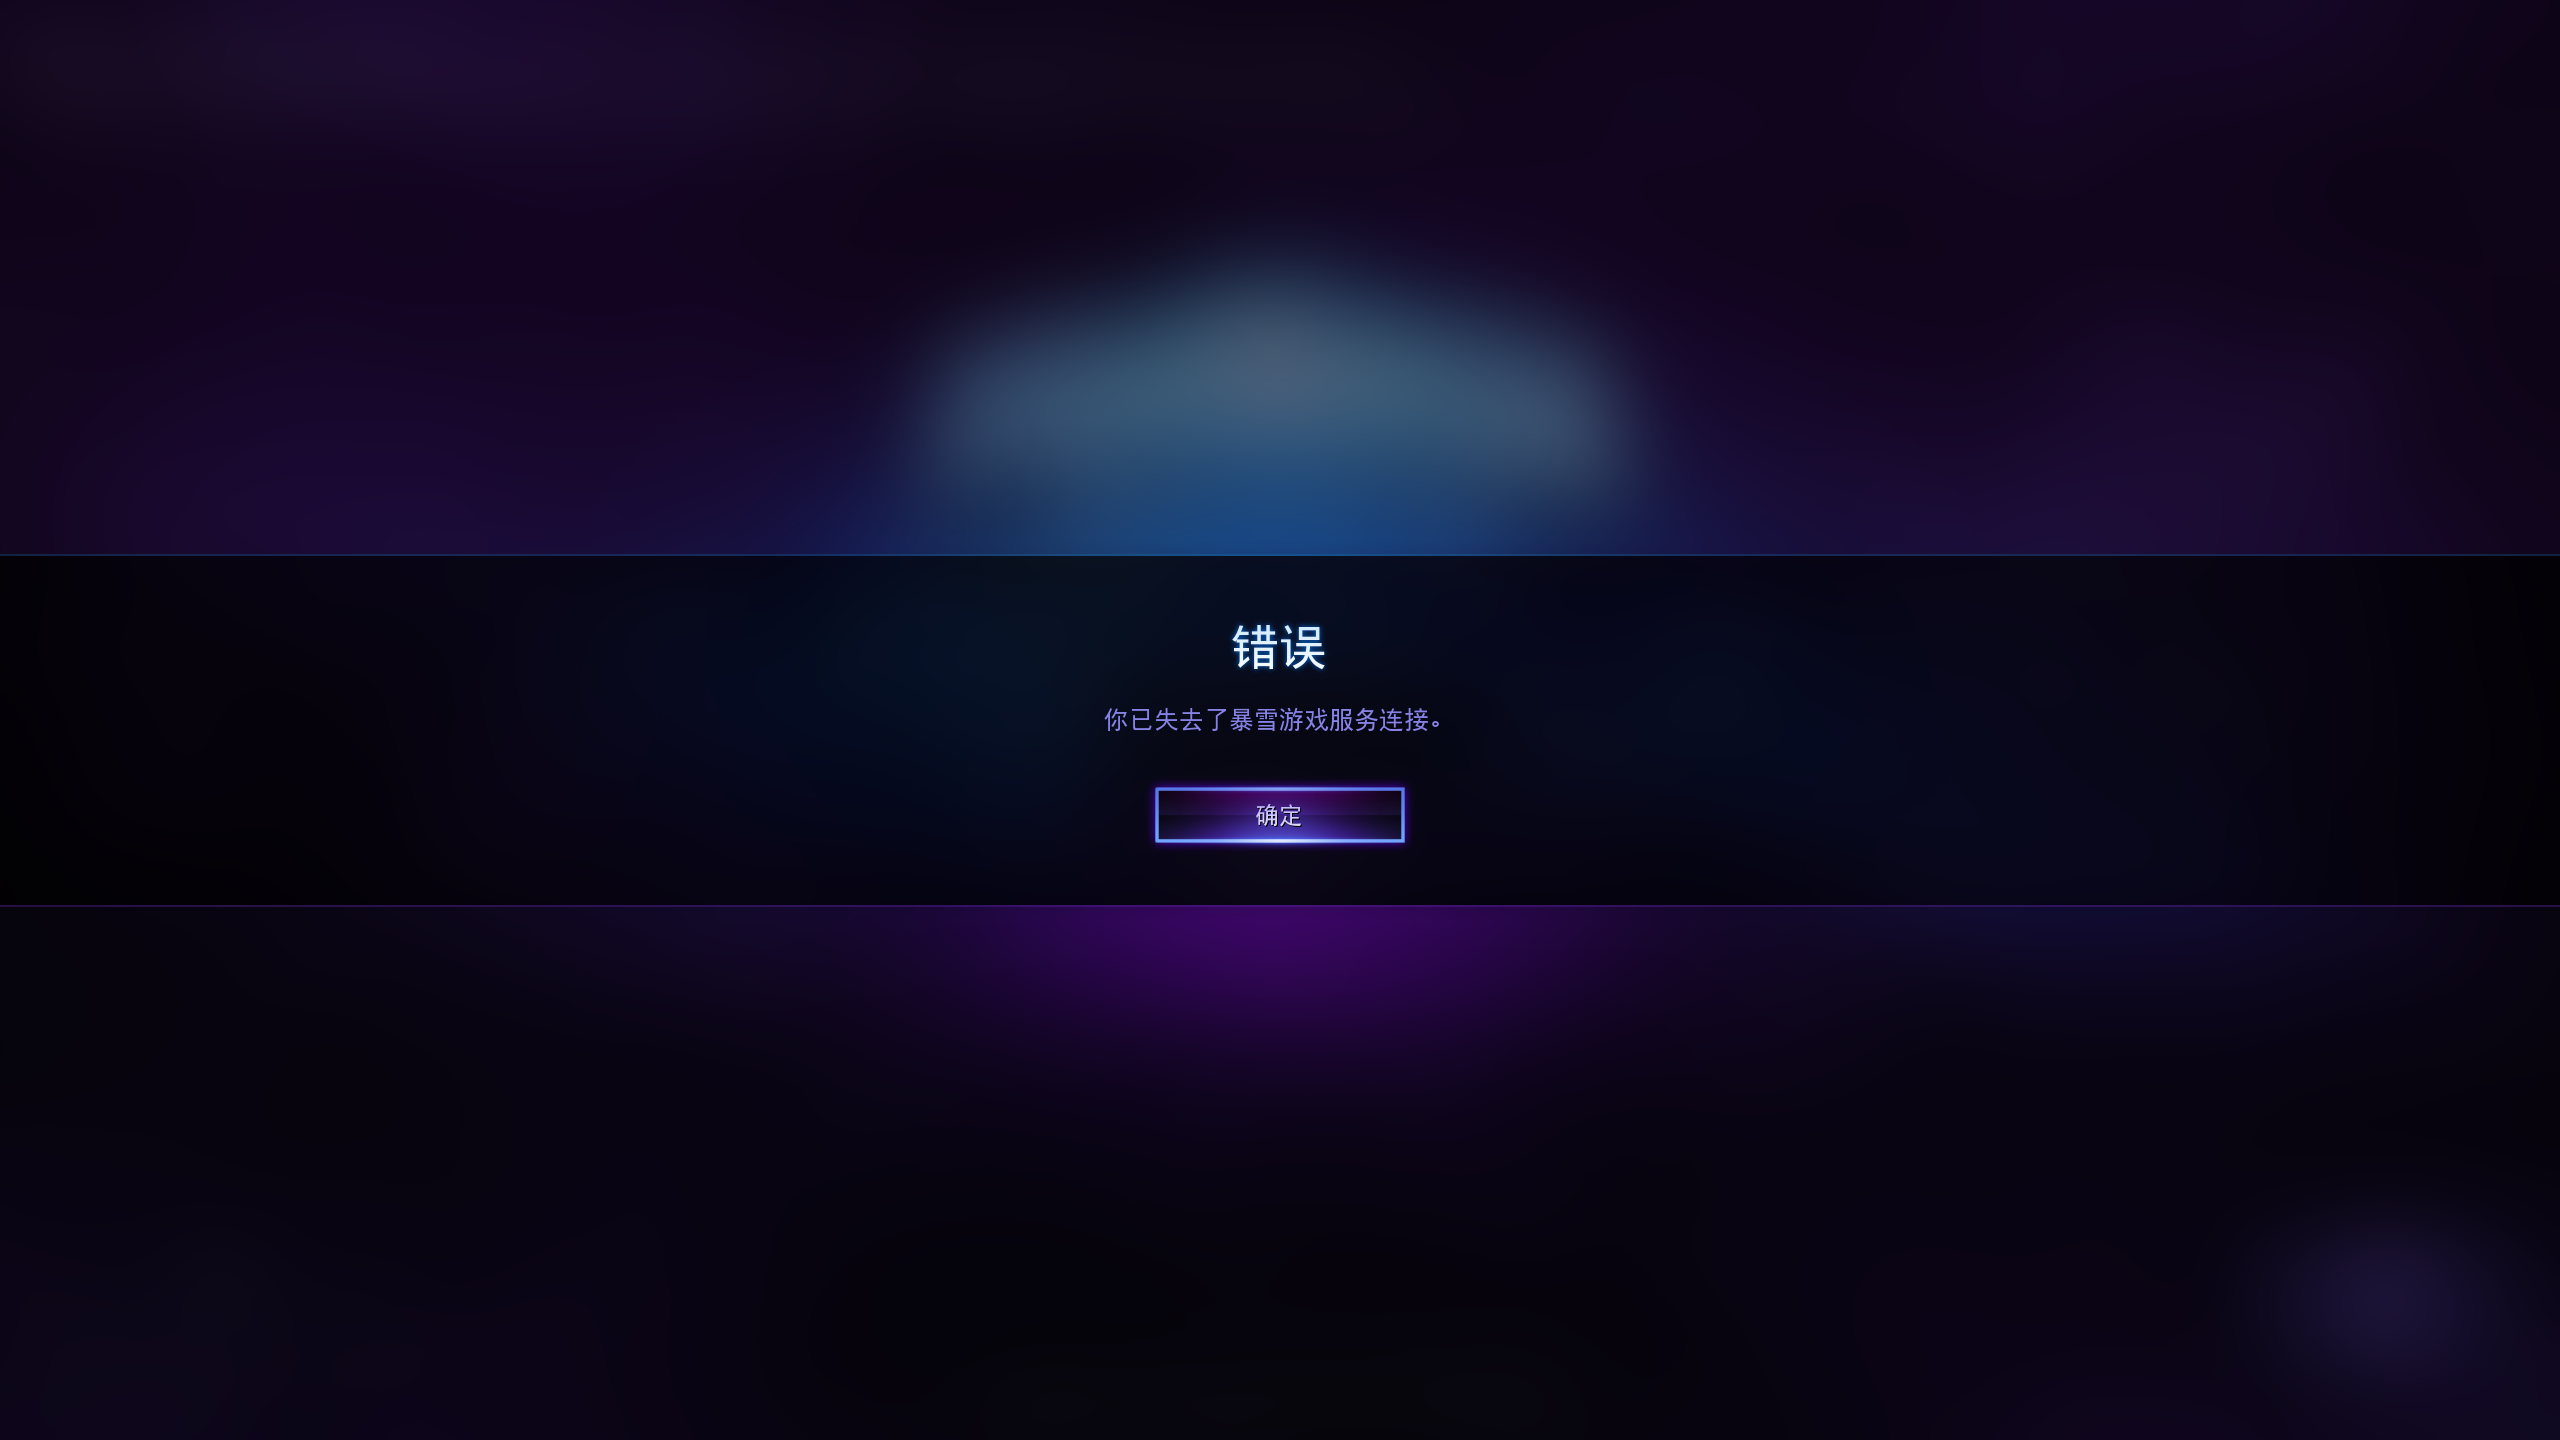 Heroes of the Storm Screenshot 2019.10.29 - 18.40.52.30.png